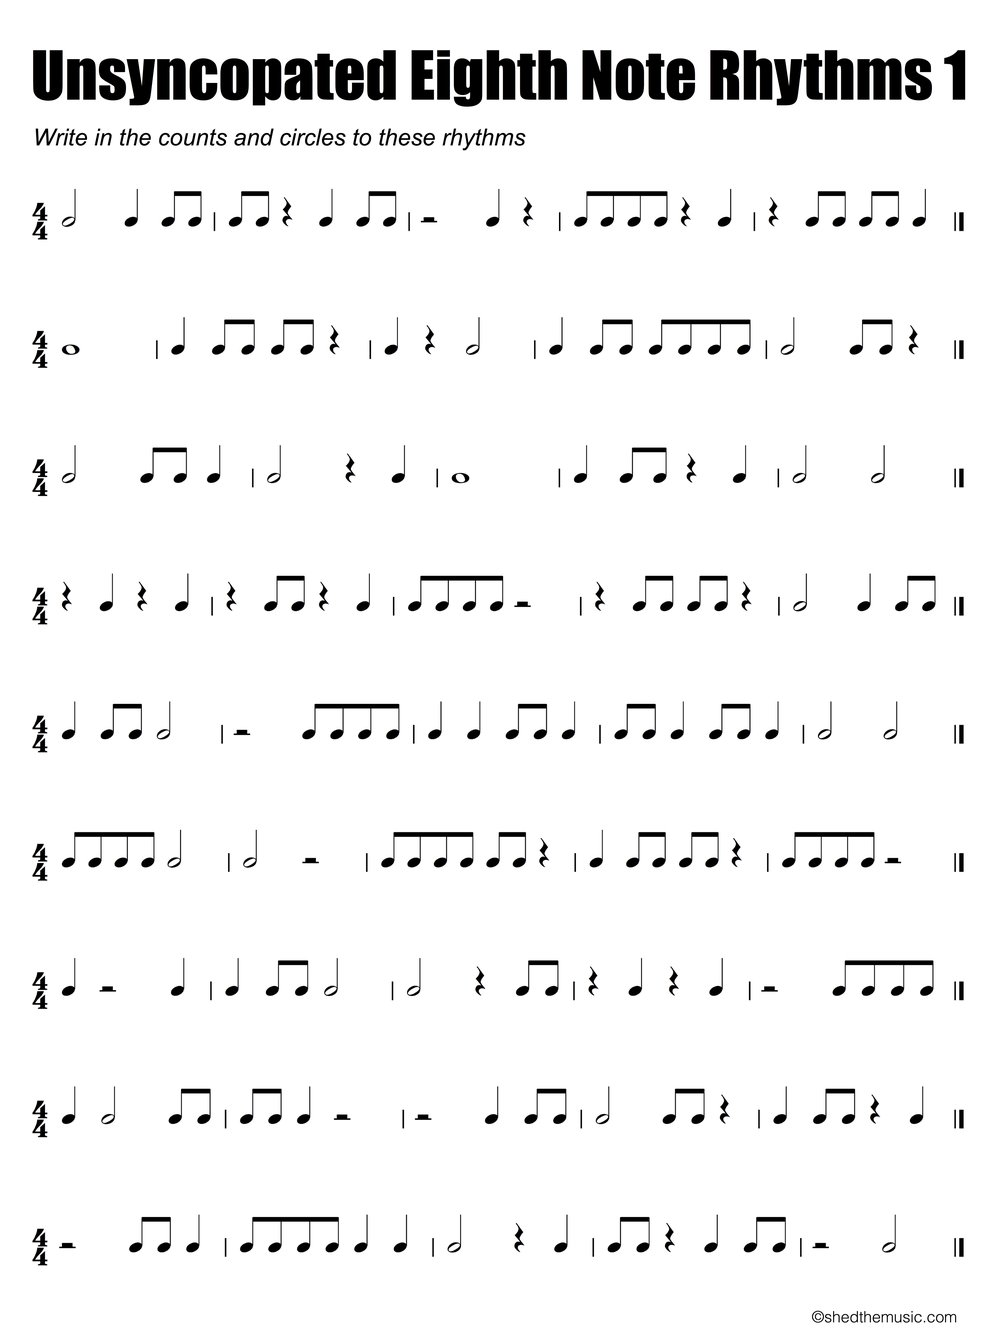 Rhythm Worksheet 1.jpg